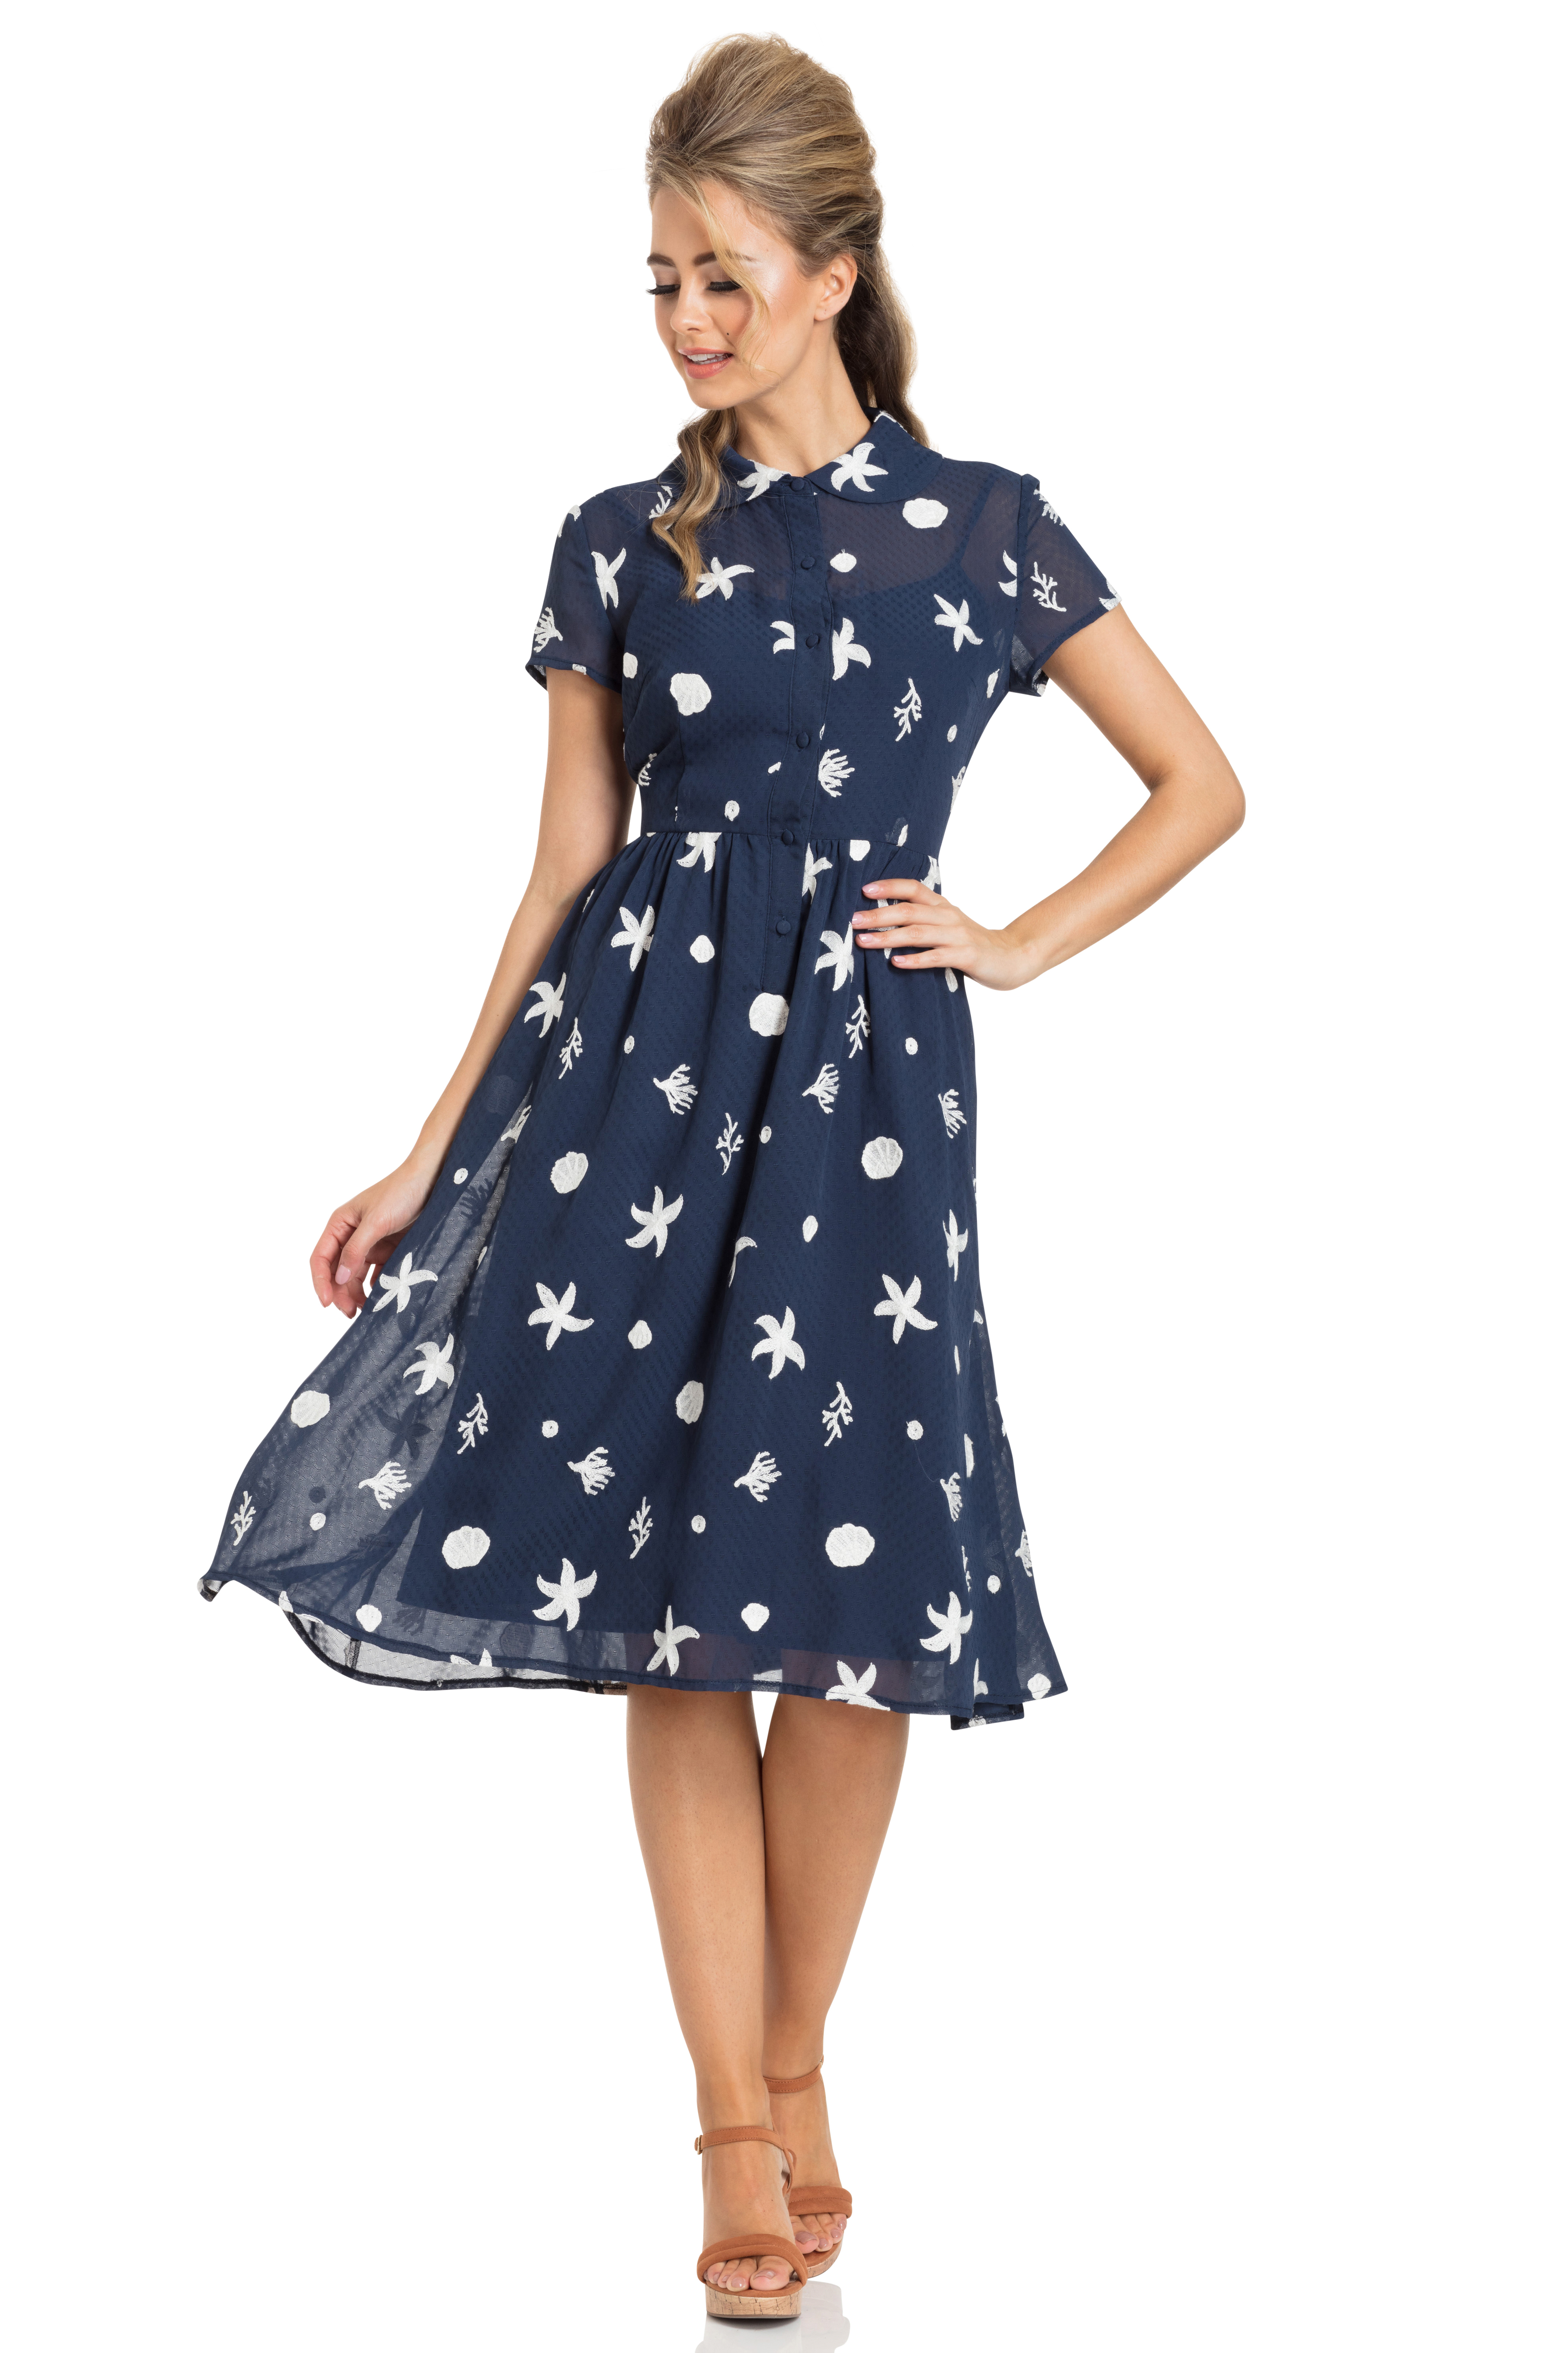 Mary Under-The-Sea Printed Swing Dress